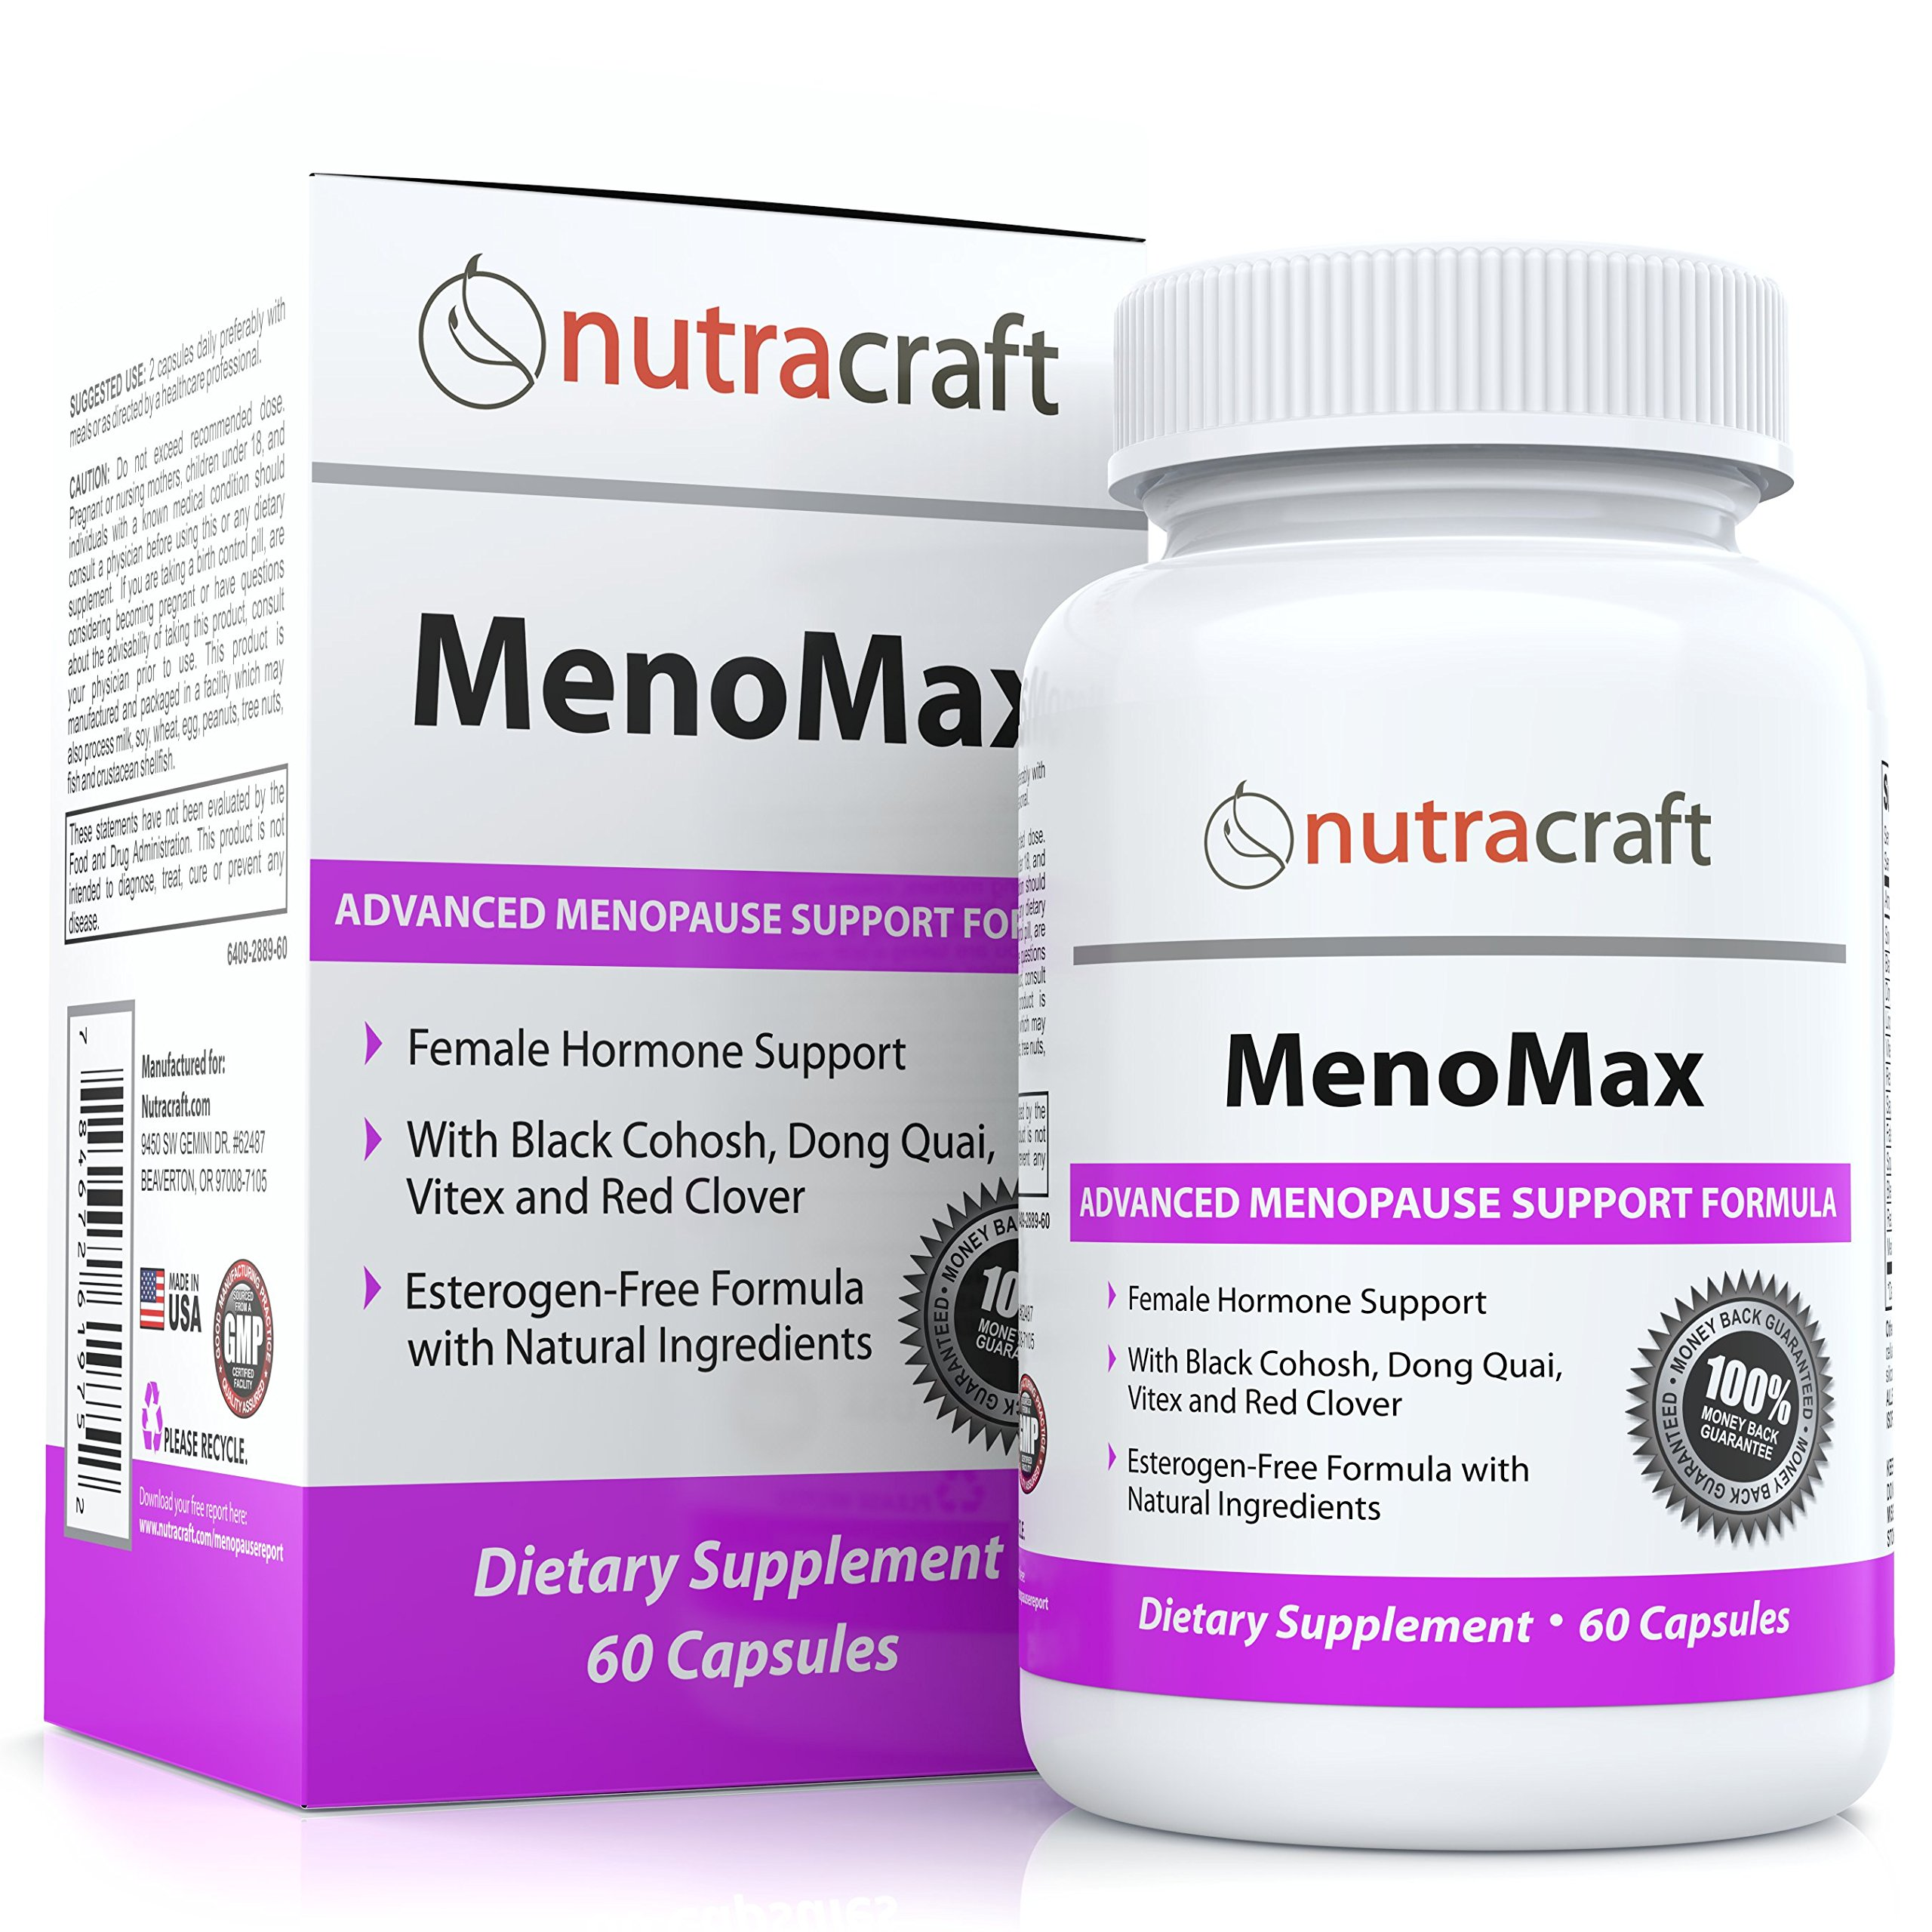 #1 Menopause Relief Supplement - Natural Herbal Menopausal Support for Hot Flashes, Night Sweats, Vaginal Dryness and Mood Swings With Black Cohosh, Dong Quai, Vitex, Soy and Wild Yam - 60 Capsules